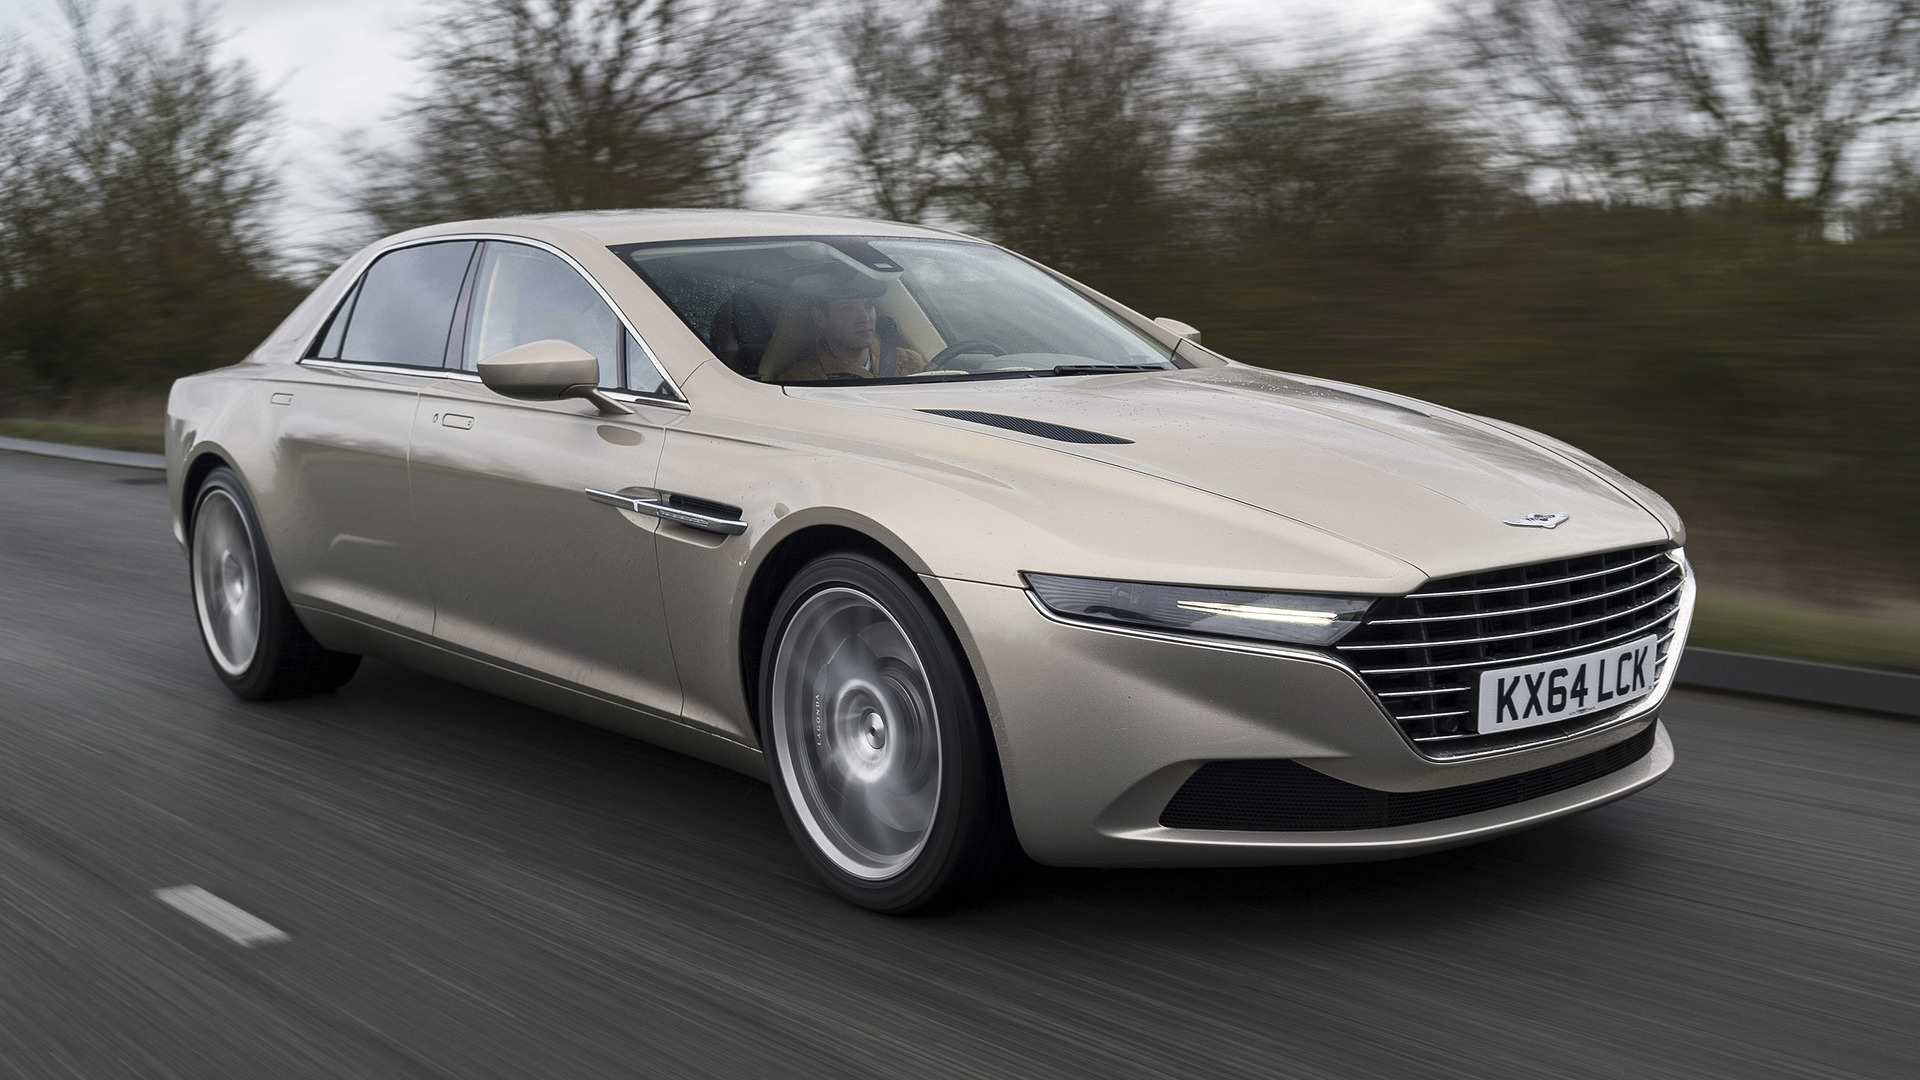 2016 Aston Martin Lagonda Taraf First Drive: The Merely